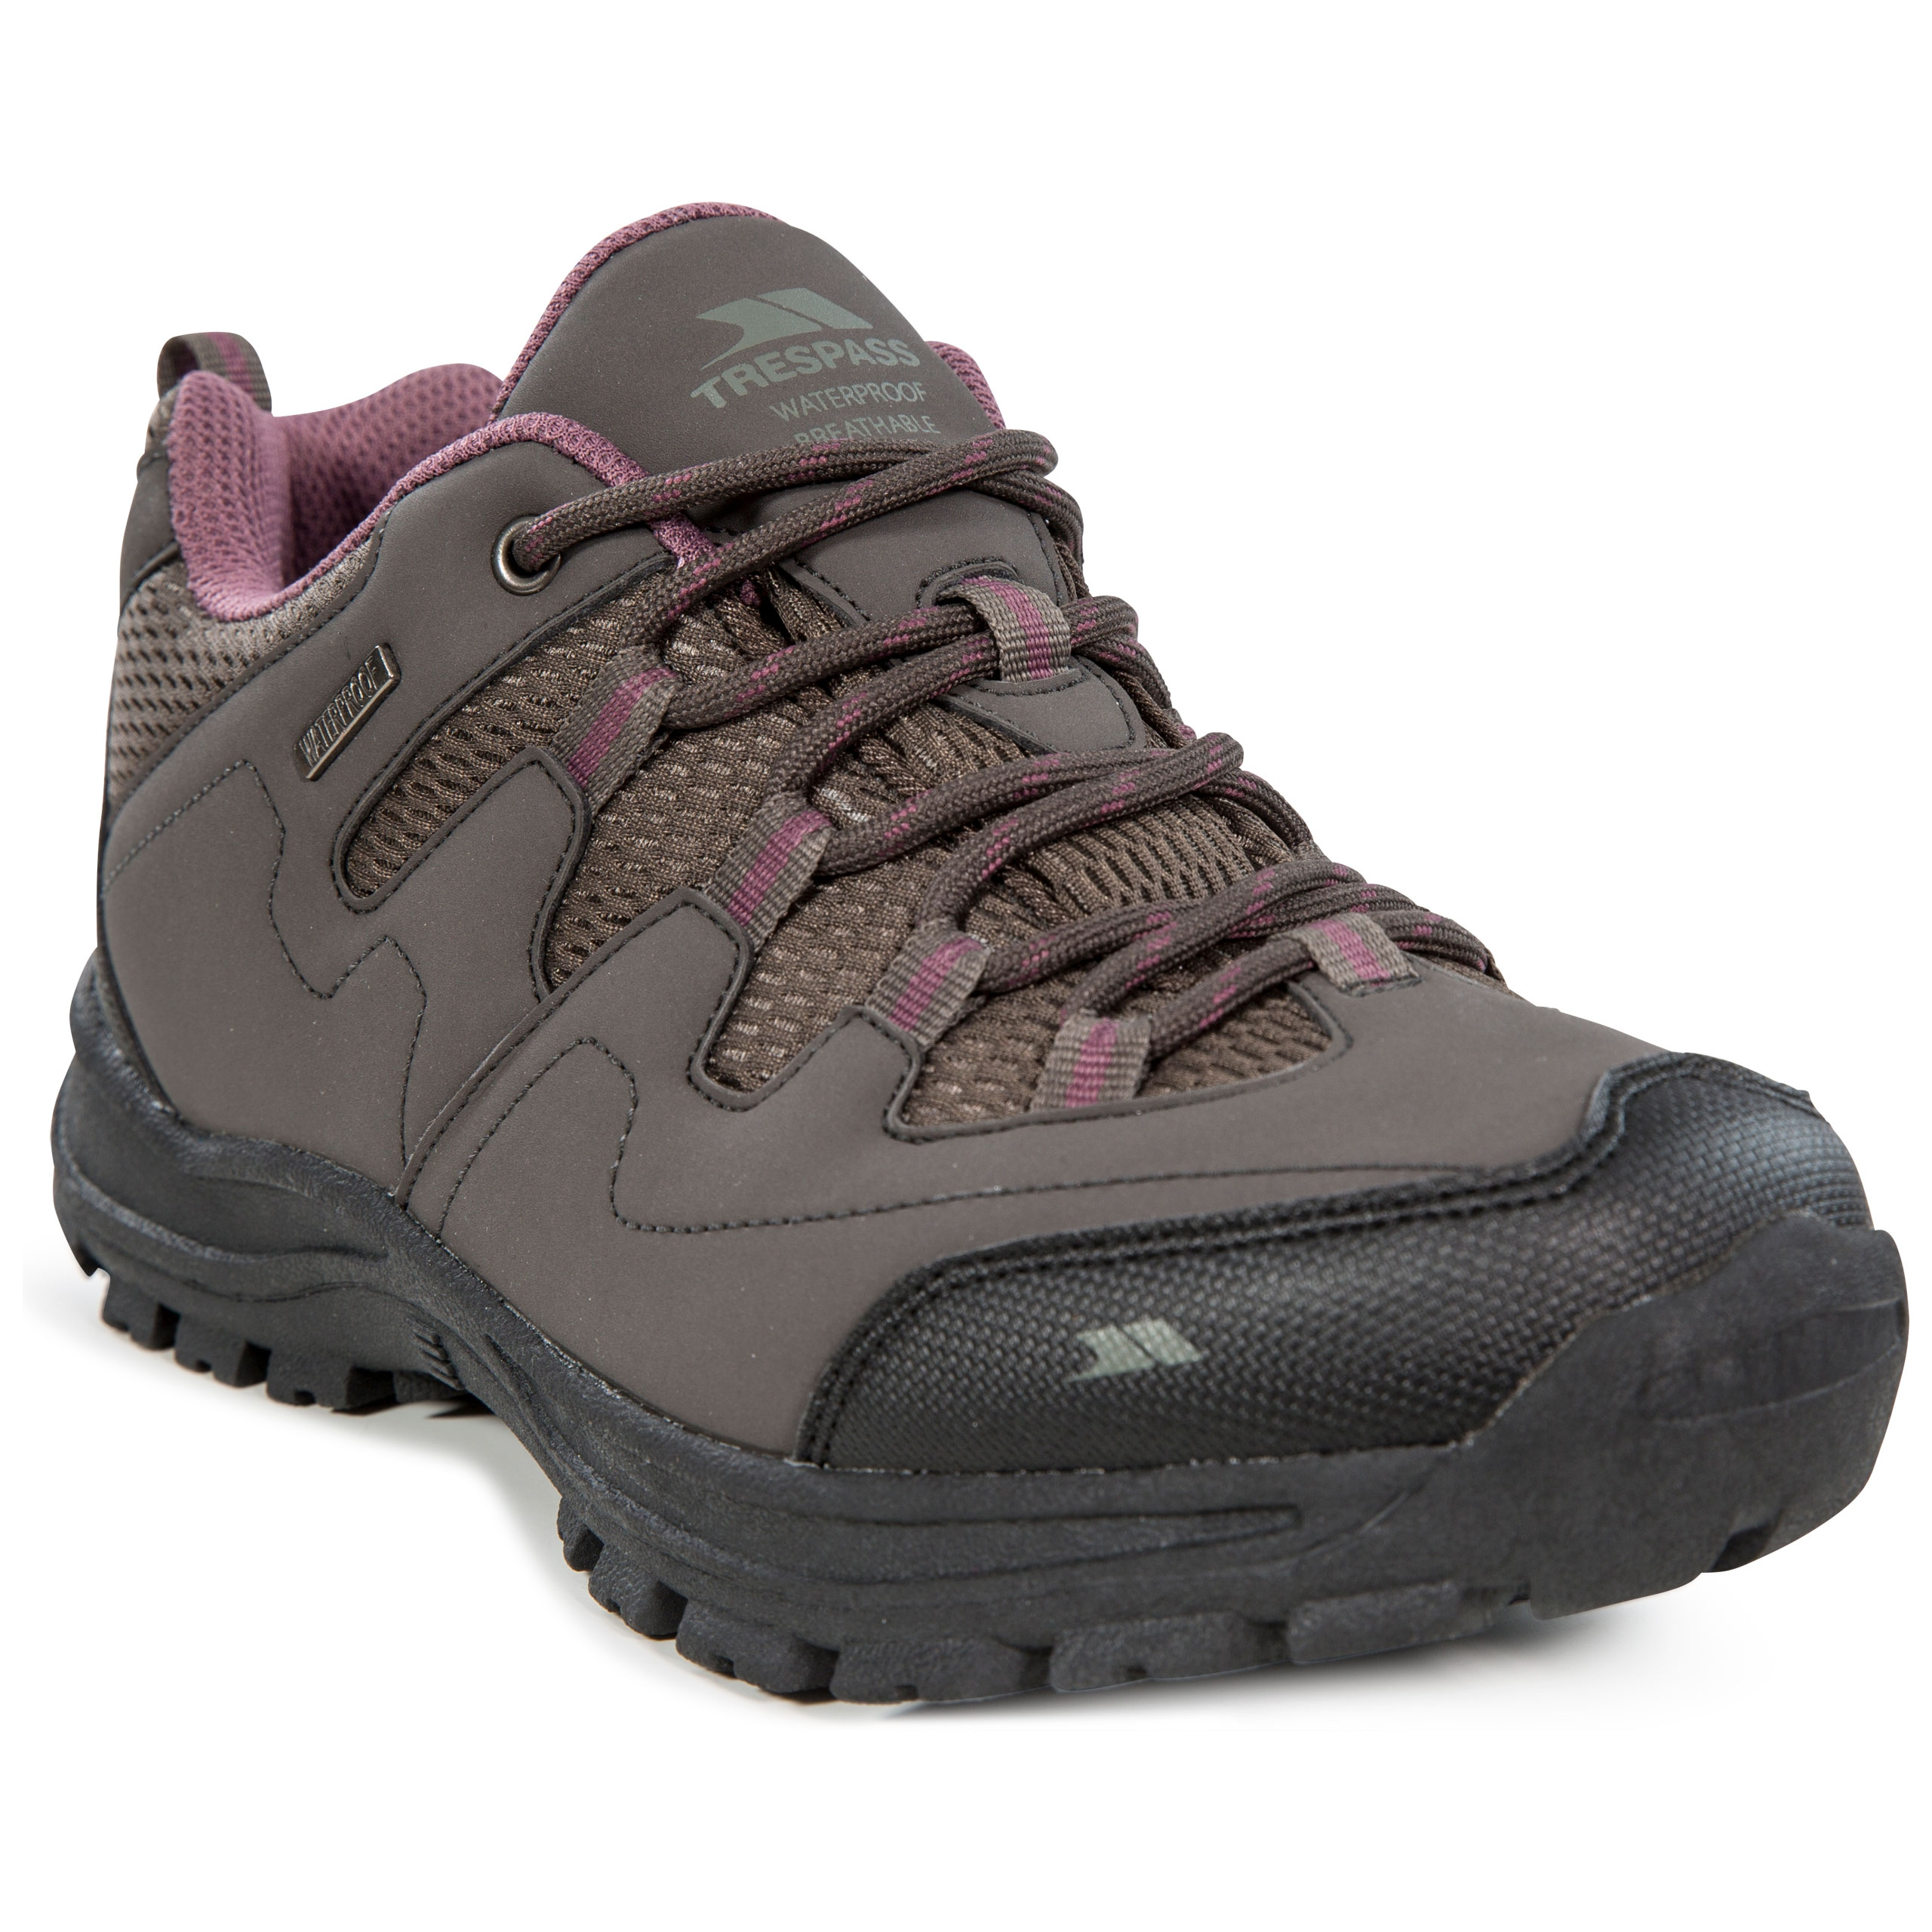 Trespass-Mitzi-Womens-Waterproof-Walking-Hiking-Shoes-For-Ladies thumbnail 4